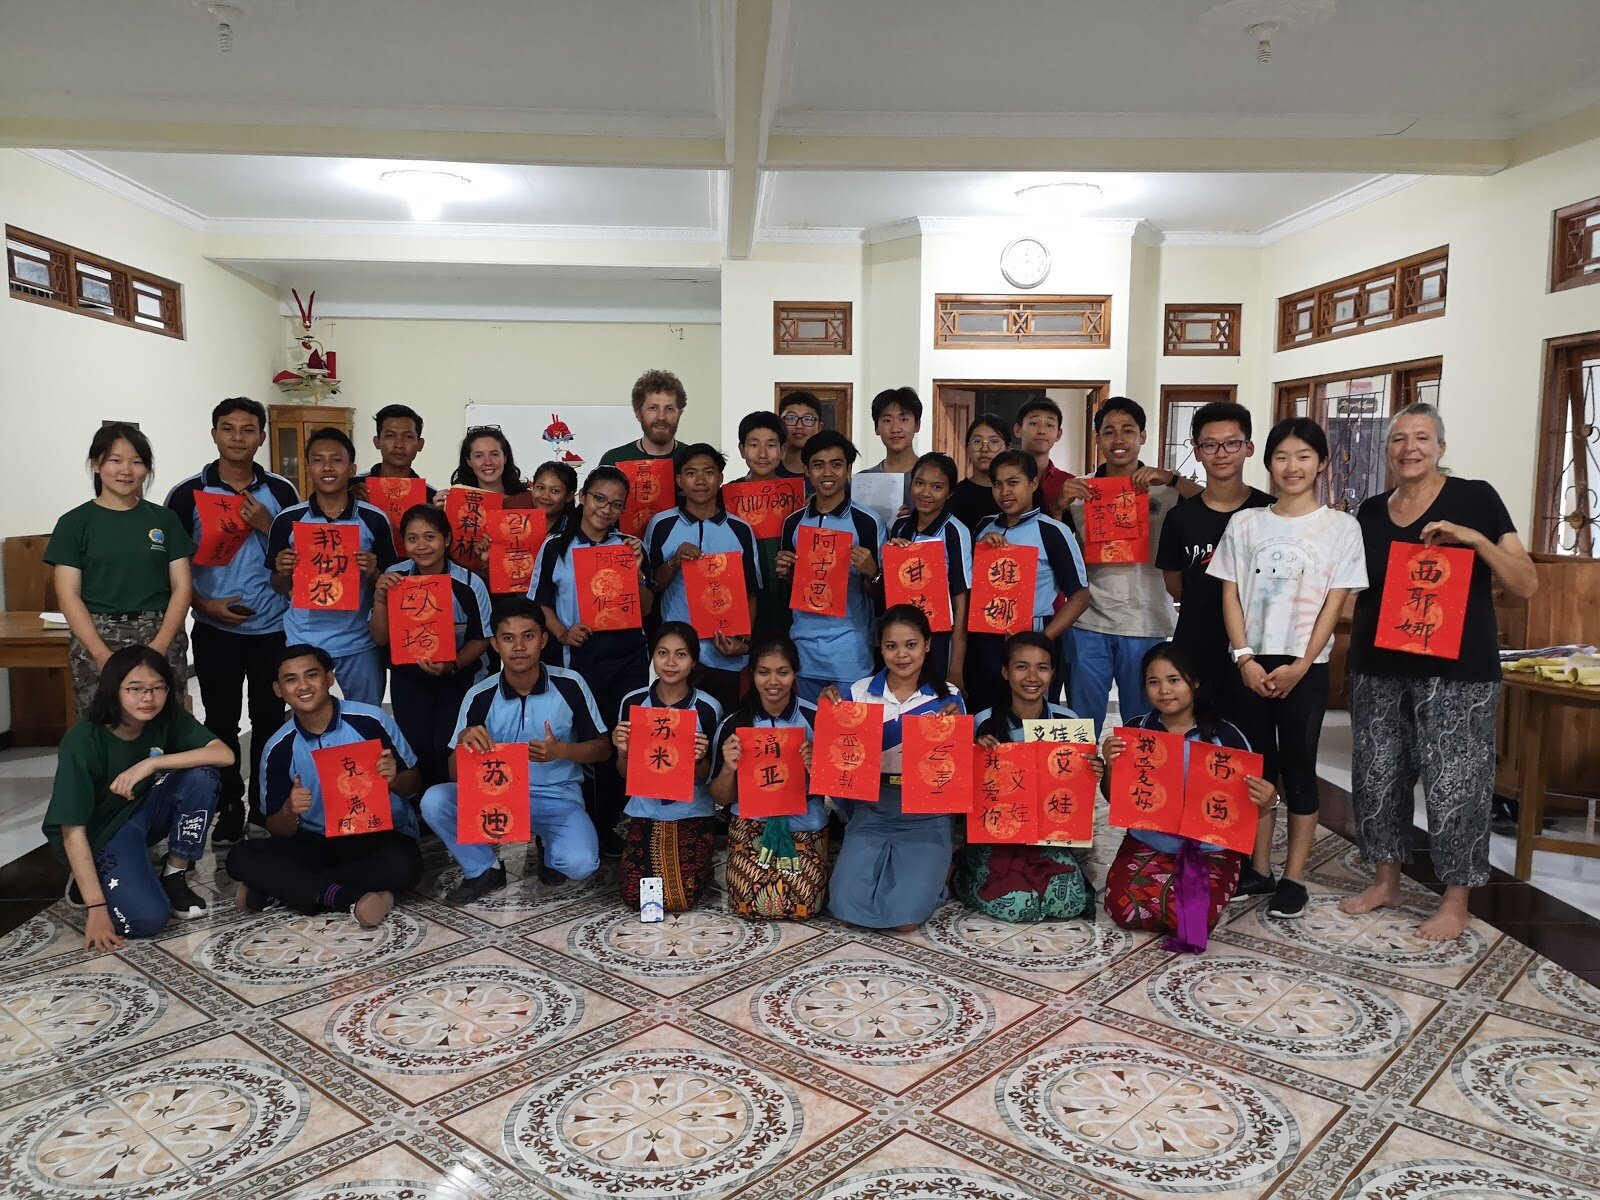 The Cultural Exchange session where the Keystone youths shared their gifts with the Balinese students through Chinese Calligraphy.